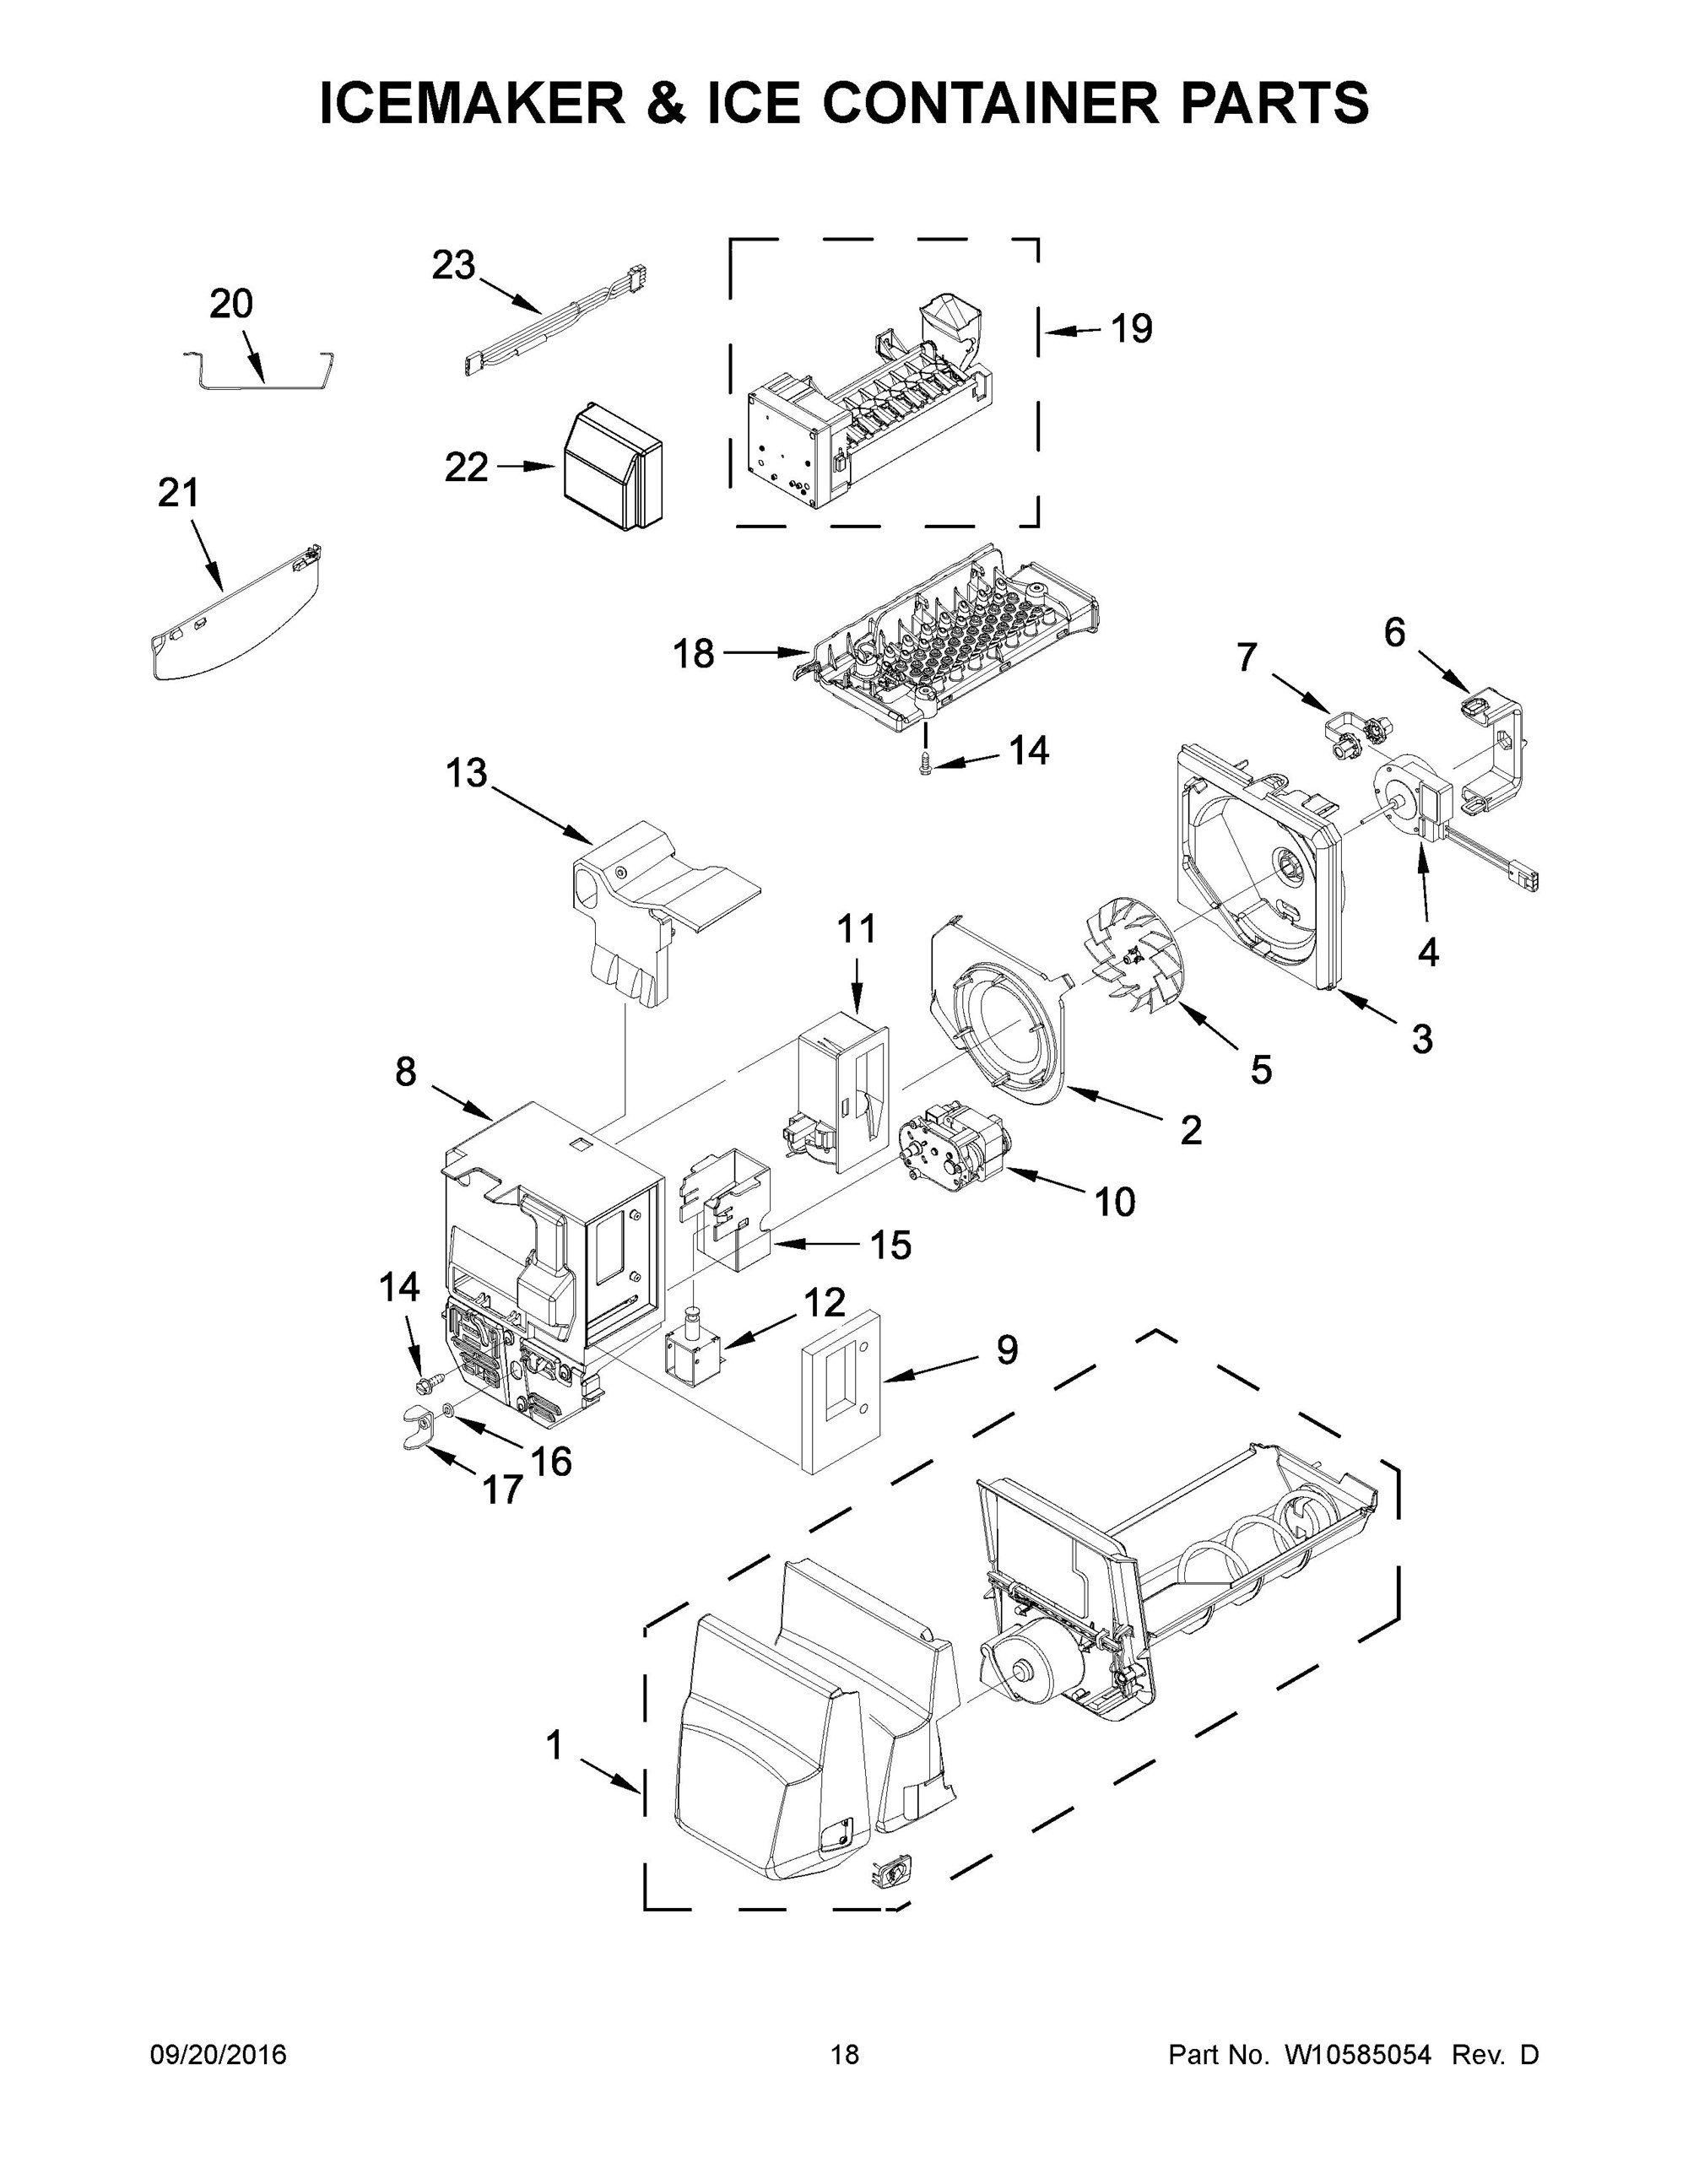 31 Whirlpool Refrigerator Ice Maker Parts Diagram